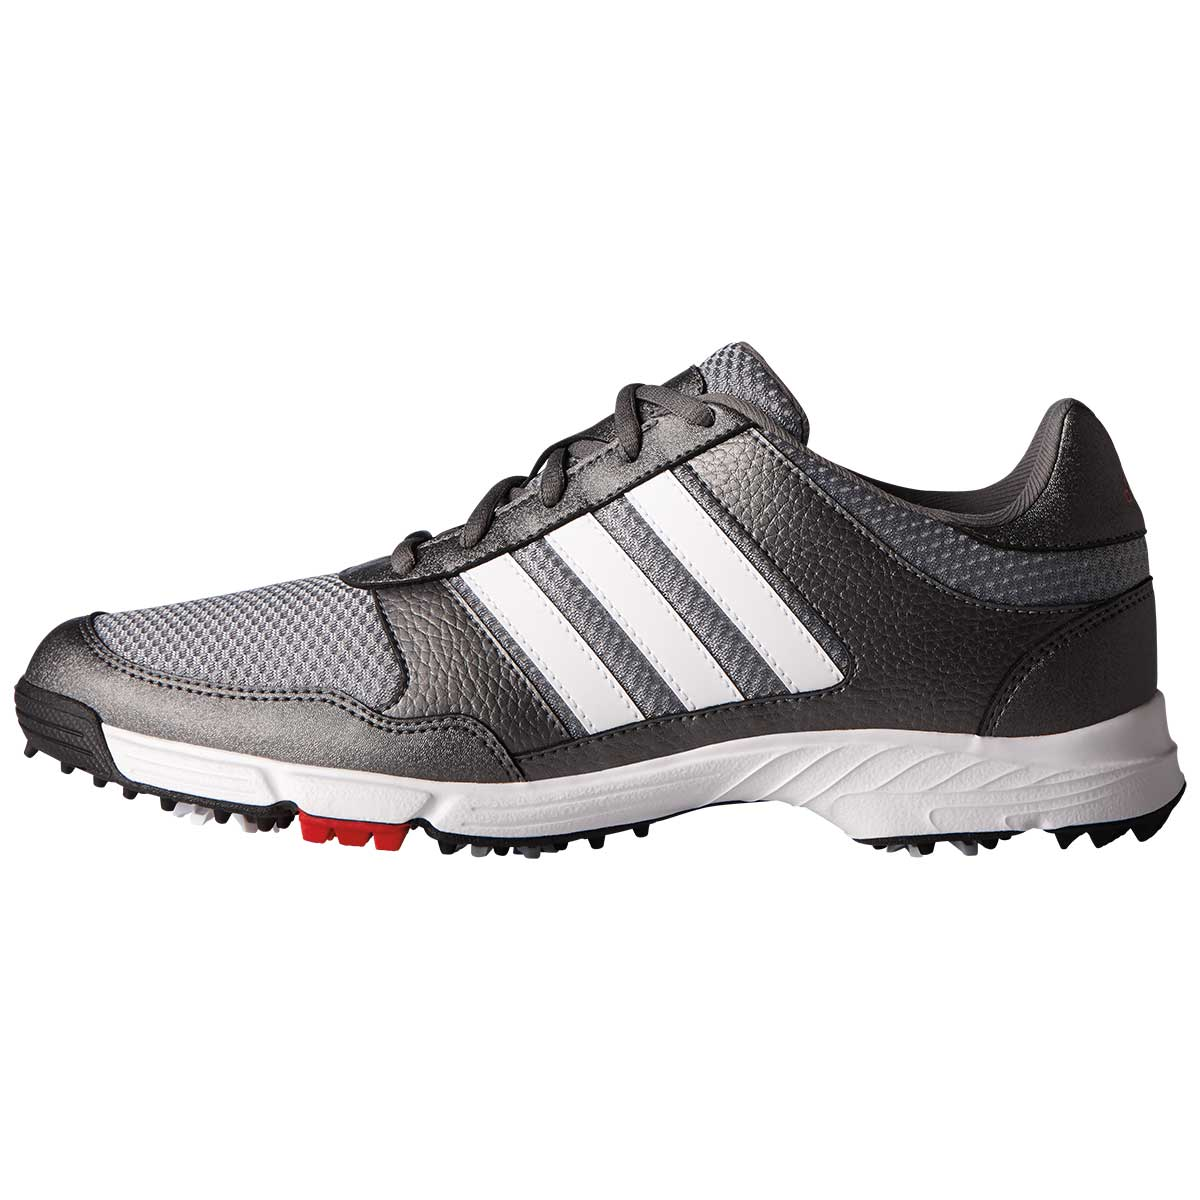 adidas Men's Tech Response Golf Shoe - Iron/White/Black